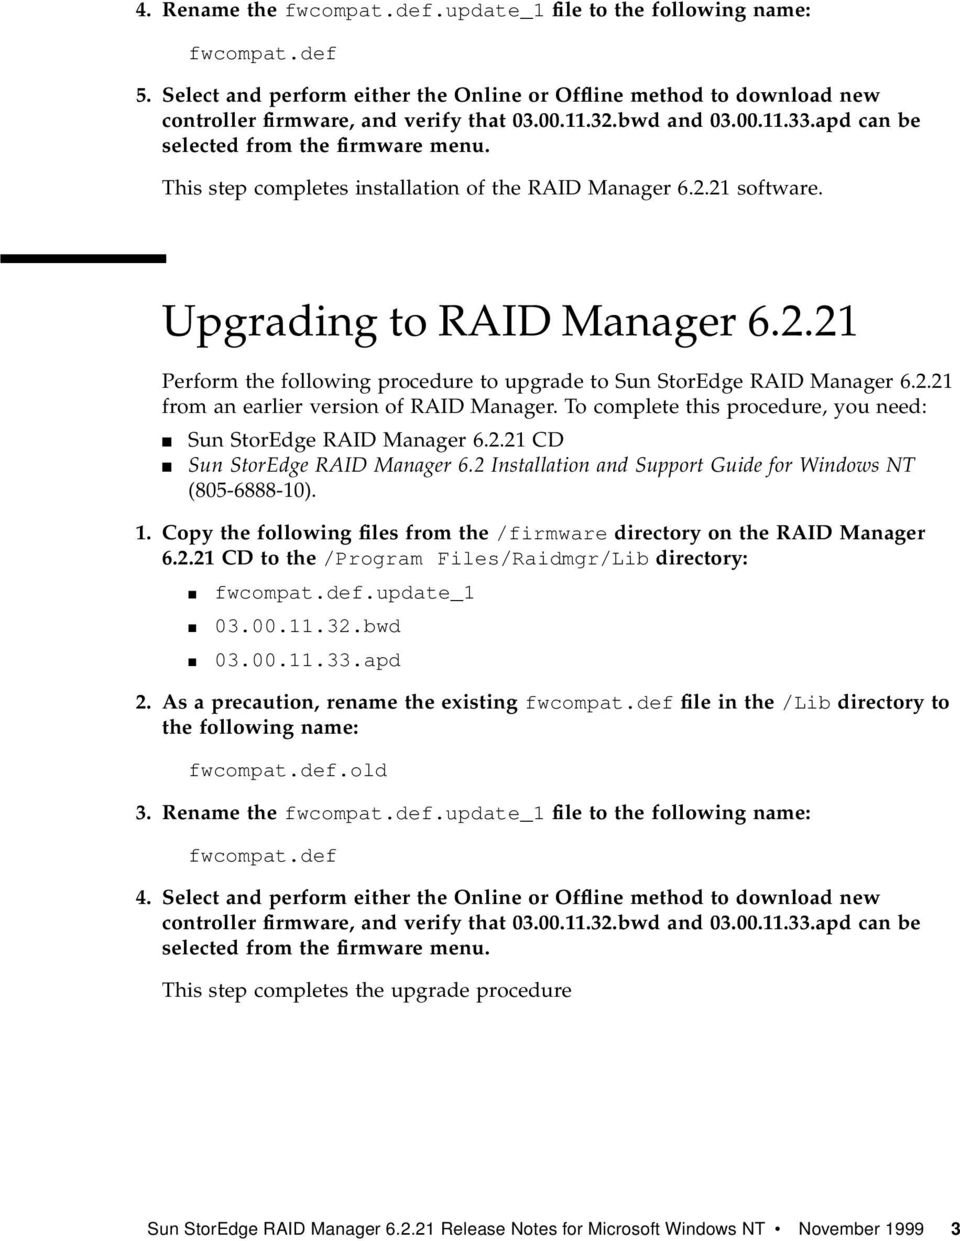 2.21 from an earlier version of RAID Manager. To complete this procedure, you need: Sun StorEdge RAID Manager 6.2.21 CD Sun StorEdge RAID Manager 6.